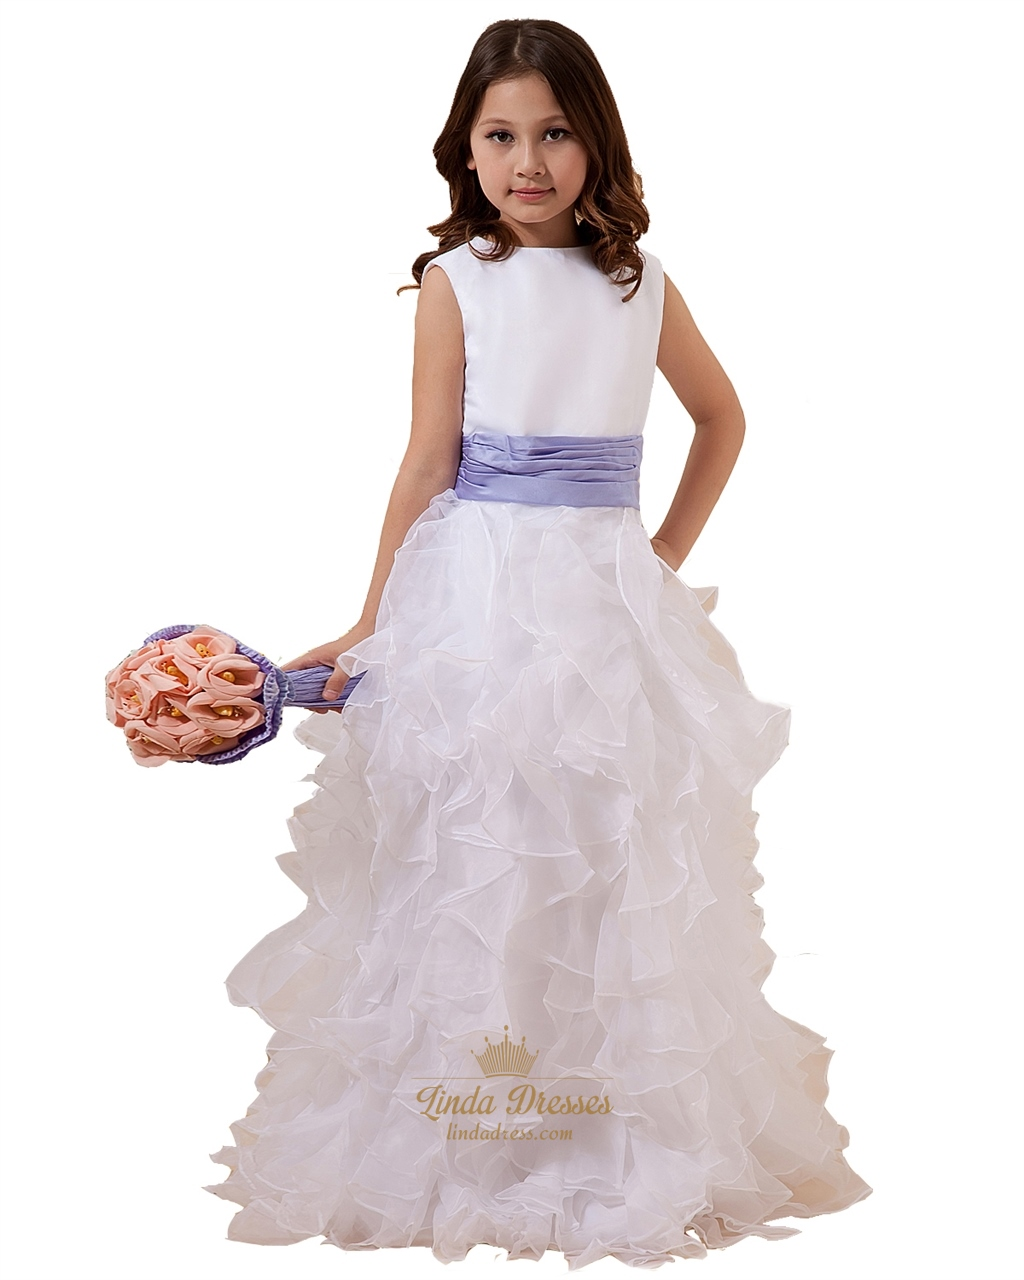 White flower girl dress with purple sash linda dress white organza ruffled skirt flower girl dress with purple sash mightylinksfo